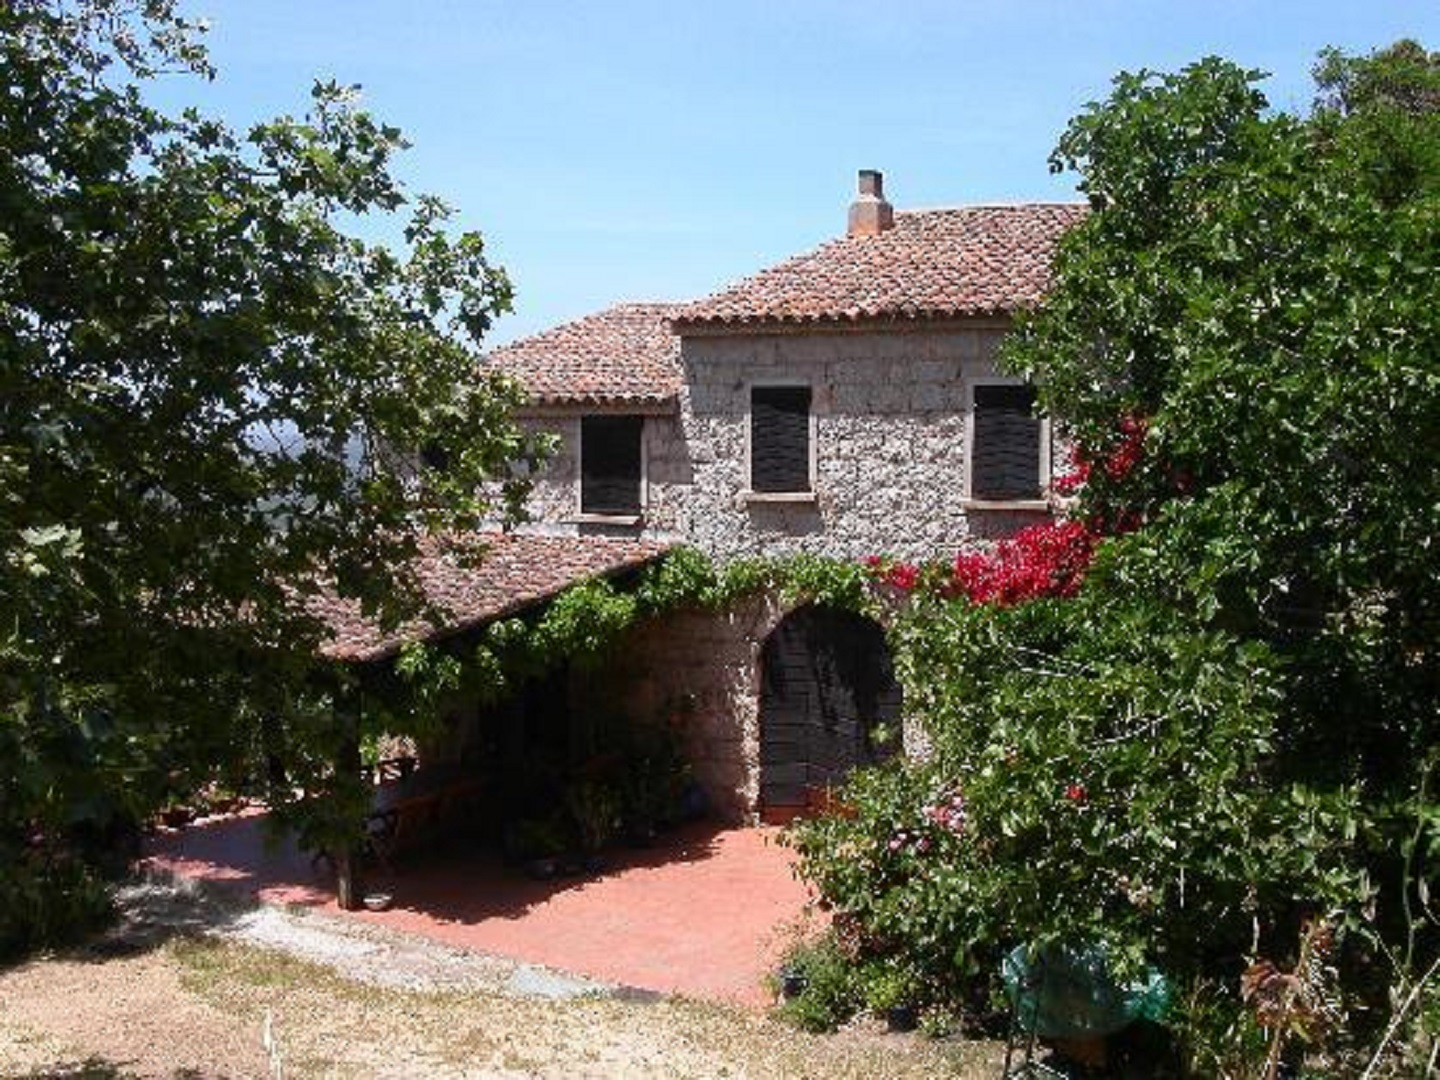 A house with bushes in front of a brick building at Le Domaine de Croccano.